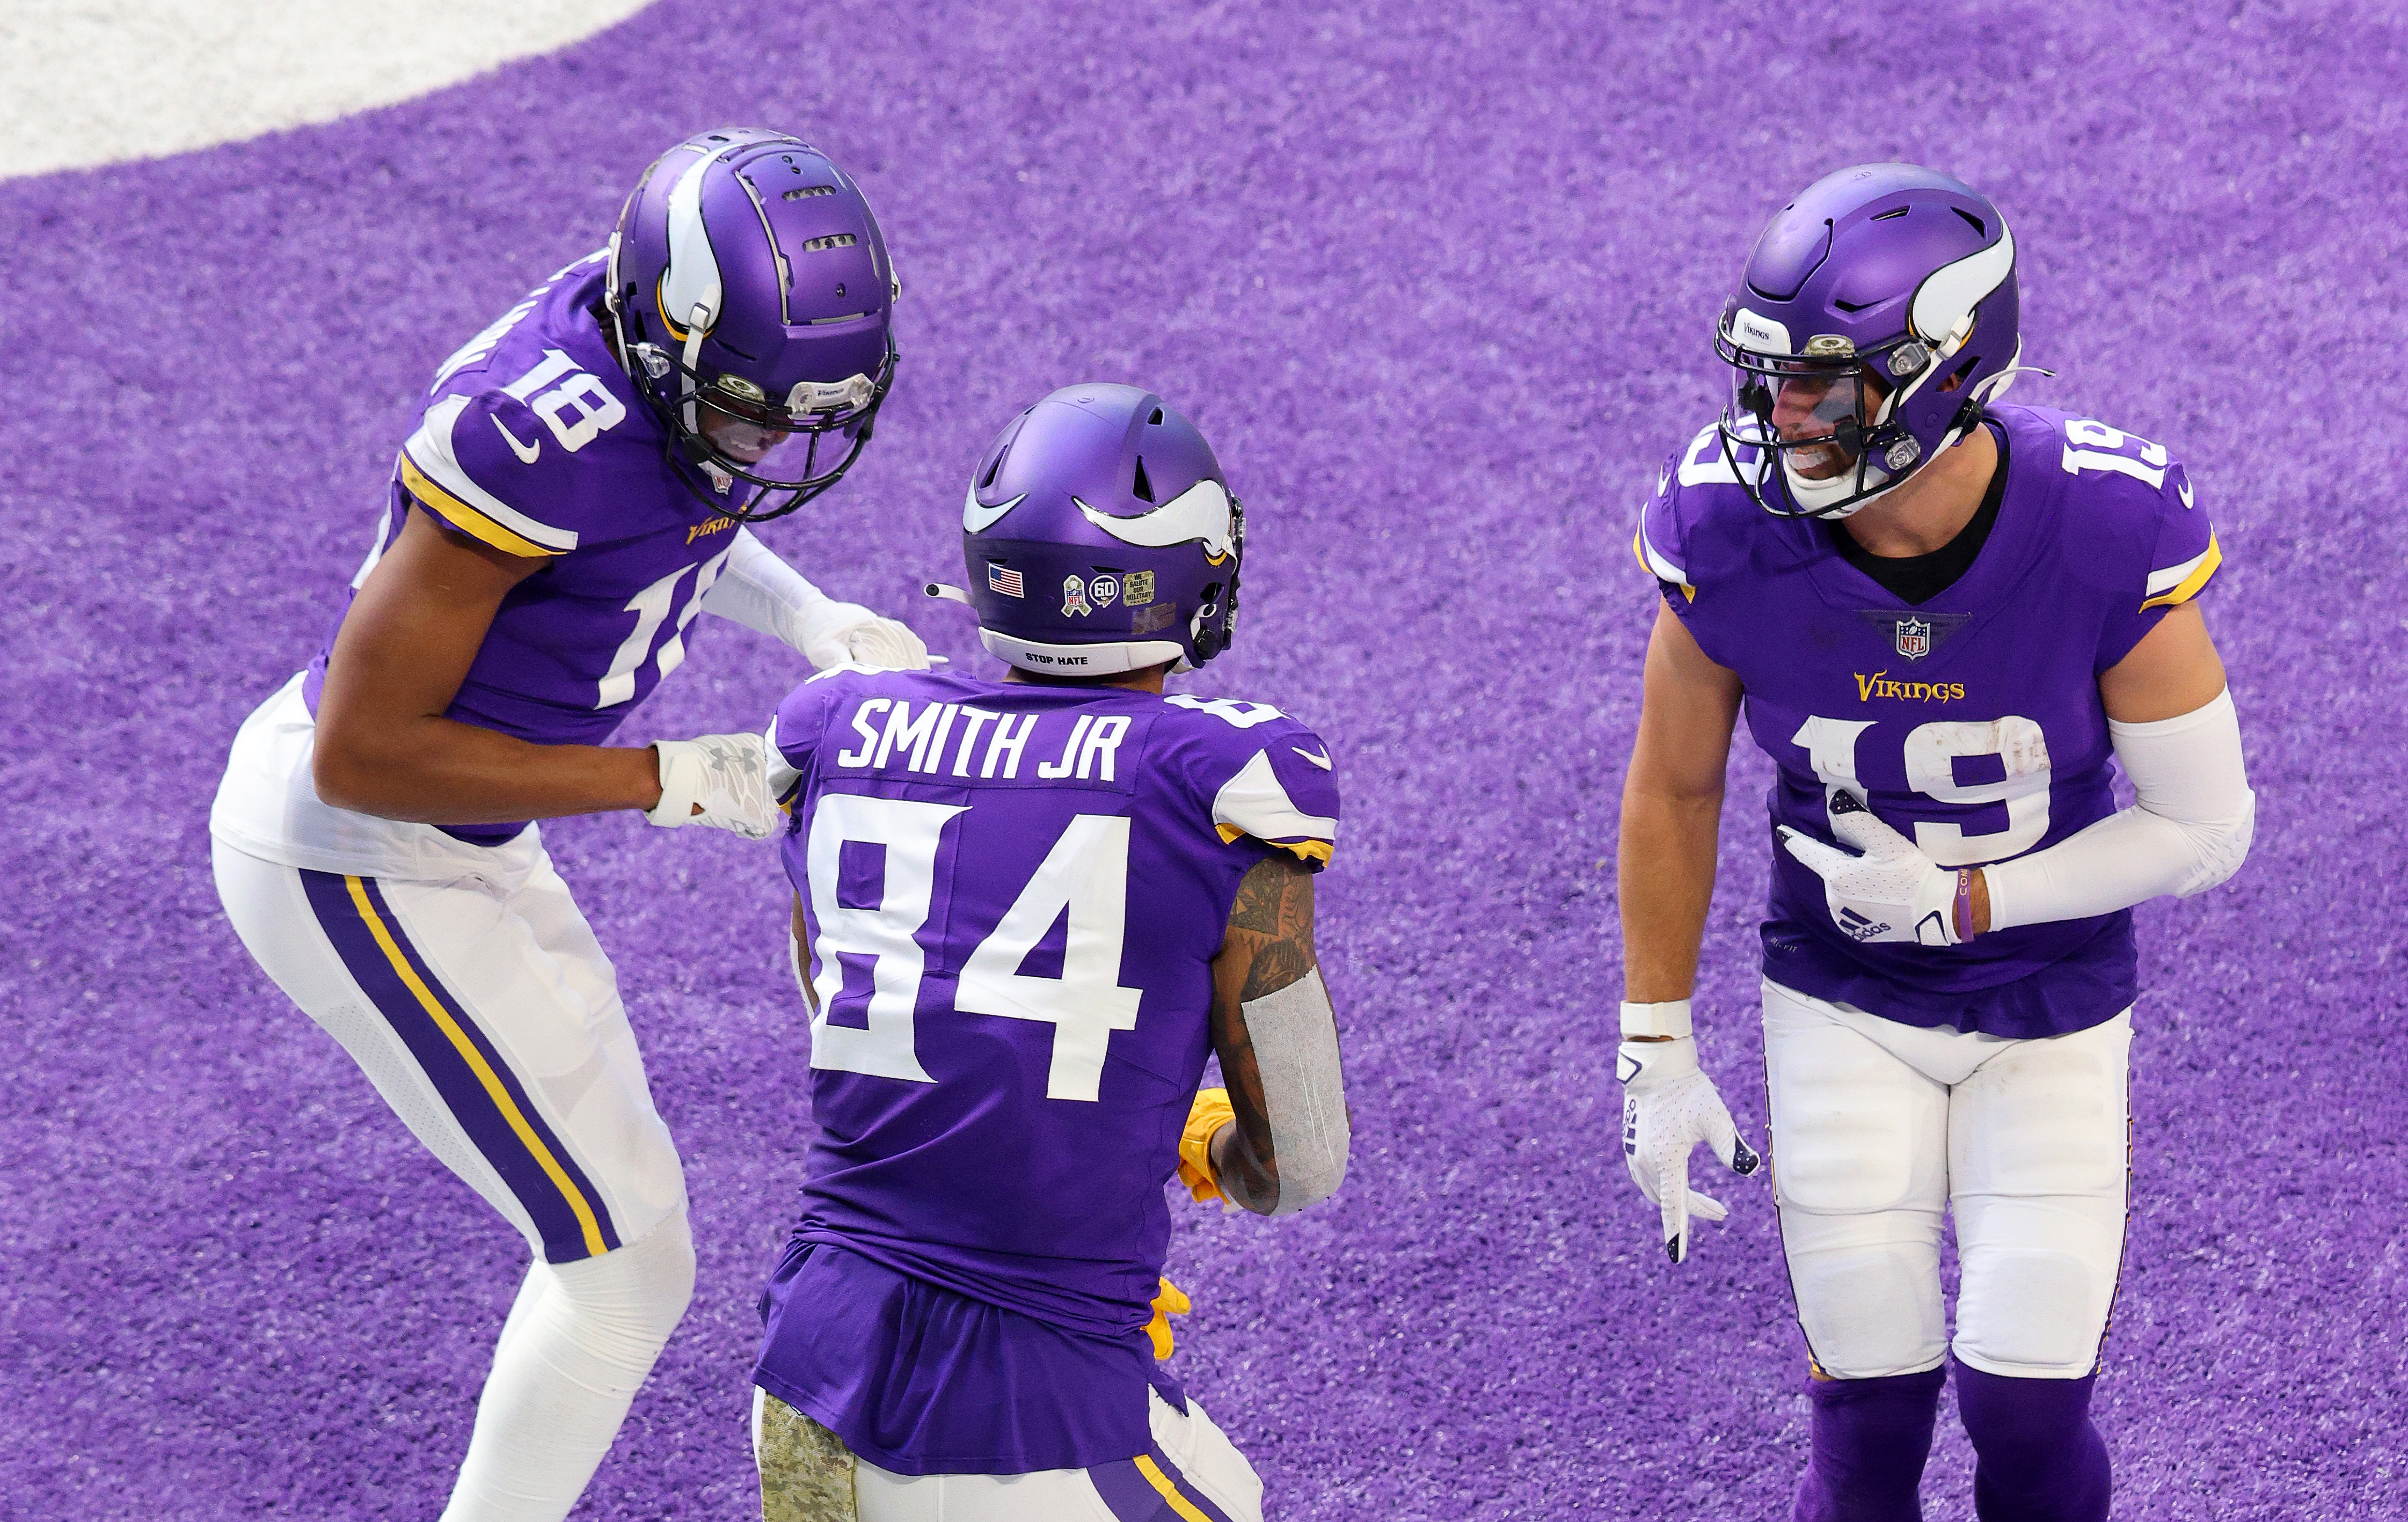 Irv Smith Jr. #84 of the Minnesota Vikings celebrates with Justin Jefferson #18 and Adam Thielen #19 after he scored a touchdown against the Detroit Lions at U.S. Bank Stadium on November 08, 2020 in Minneapolis, Minnesota.